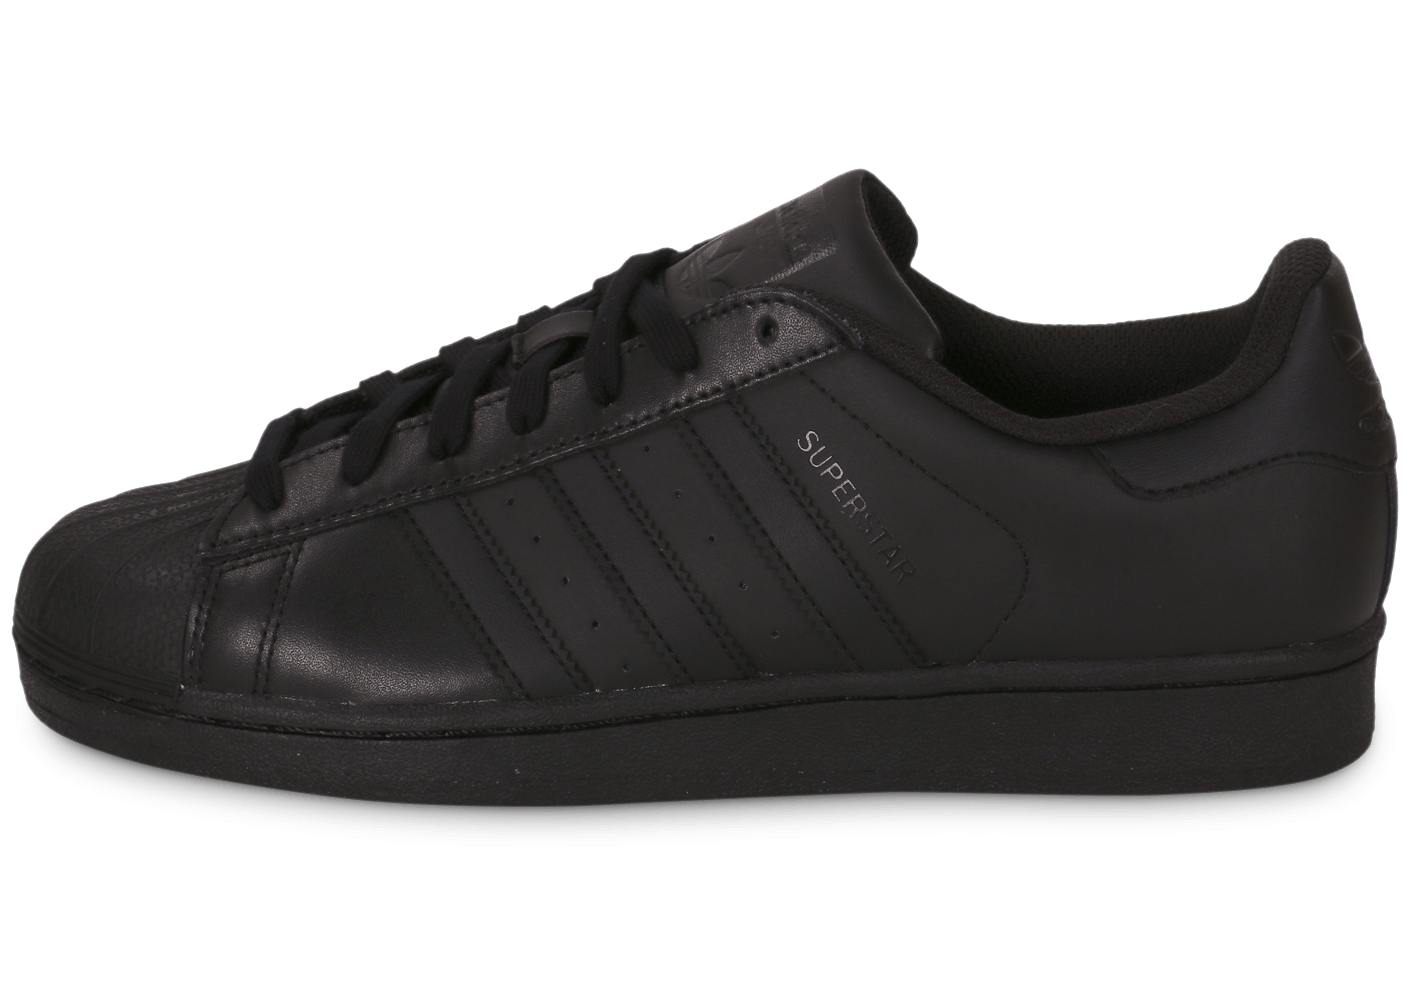 adidas superstar foundation triple black chaussures homme chausport. Black Bedroom Furniture Sets. Home Design Ideas